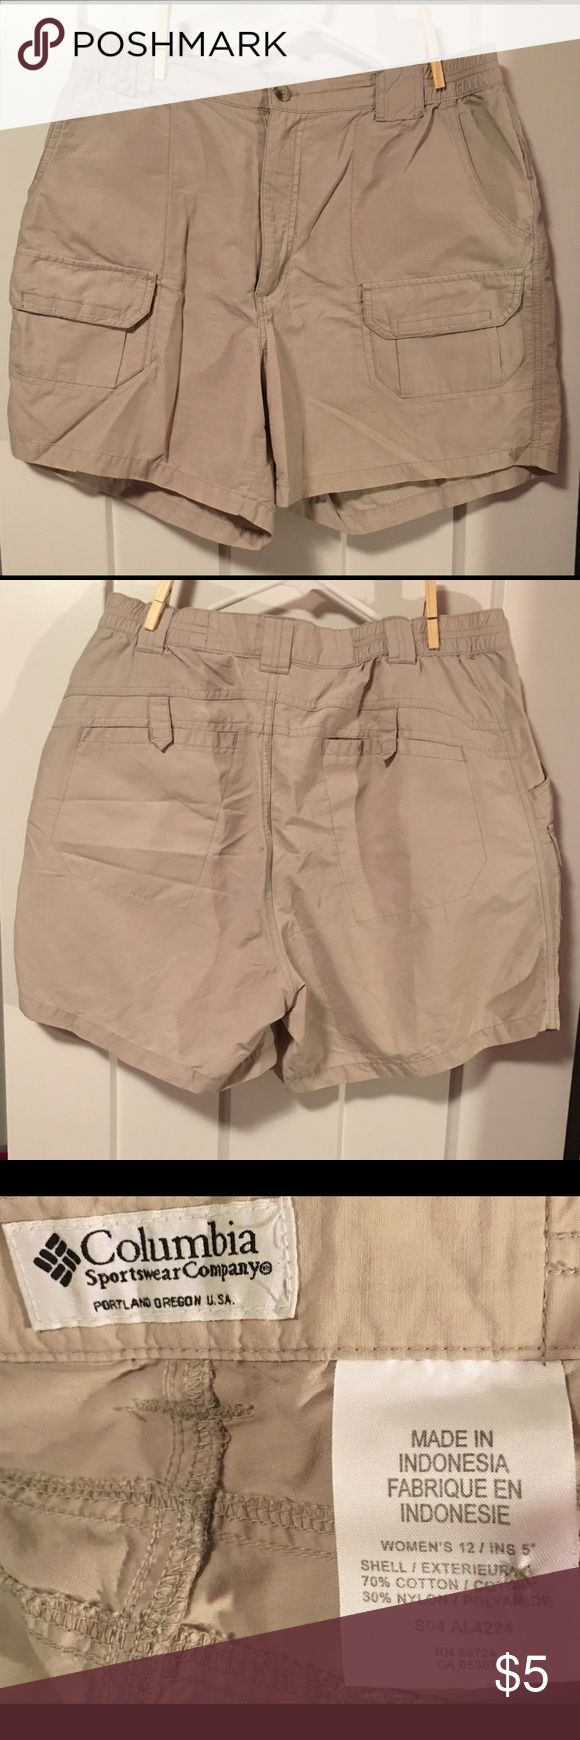 Women's Columbia Fishing Shorts Tan Size 12 Women's tan Columbia fishing shorts.  Size 12 and have a small spot on the front; otherwise in great condition.  Blend of cotton and nylon, so super comfy.  Cute enough for casual, party, career or fun use. Columbia Shorts